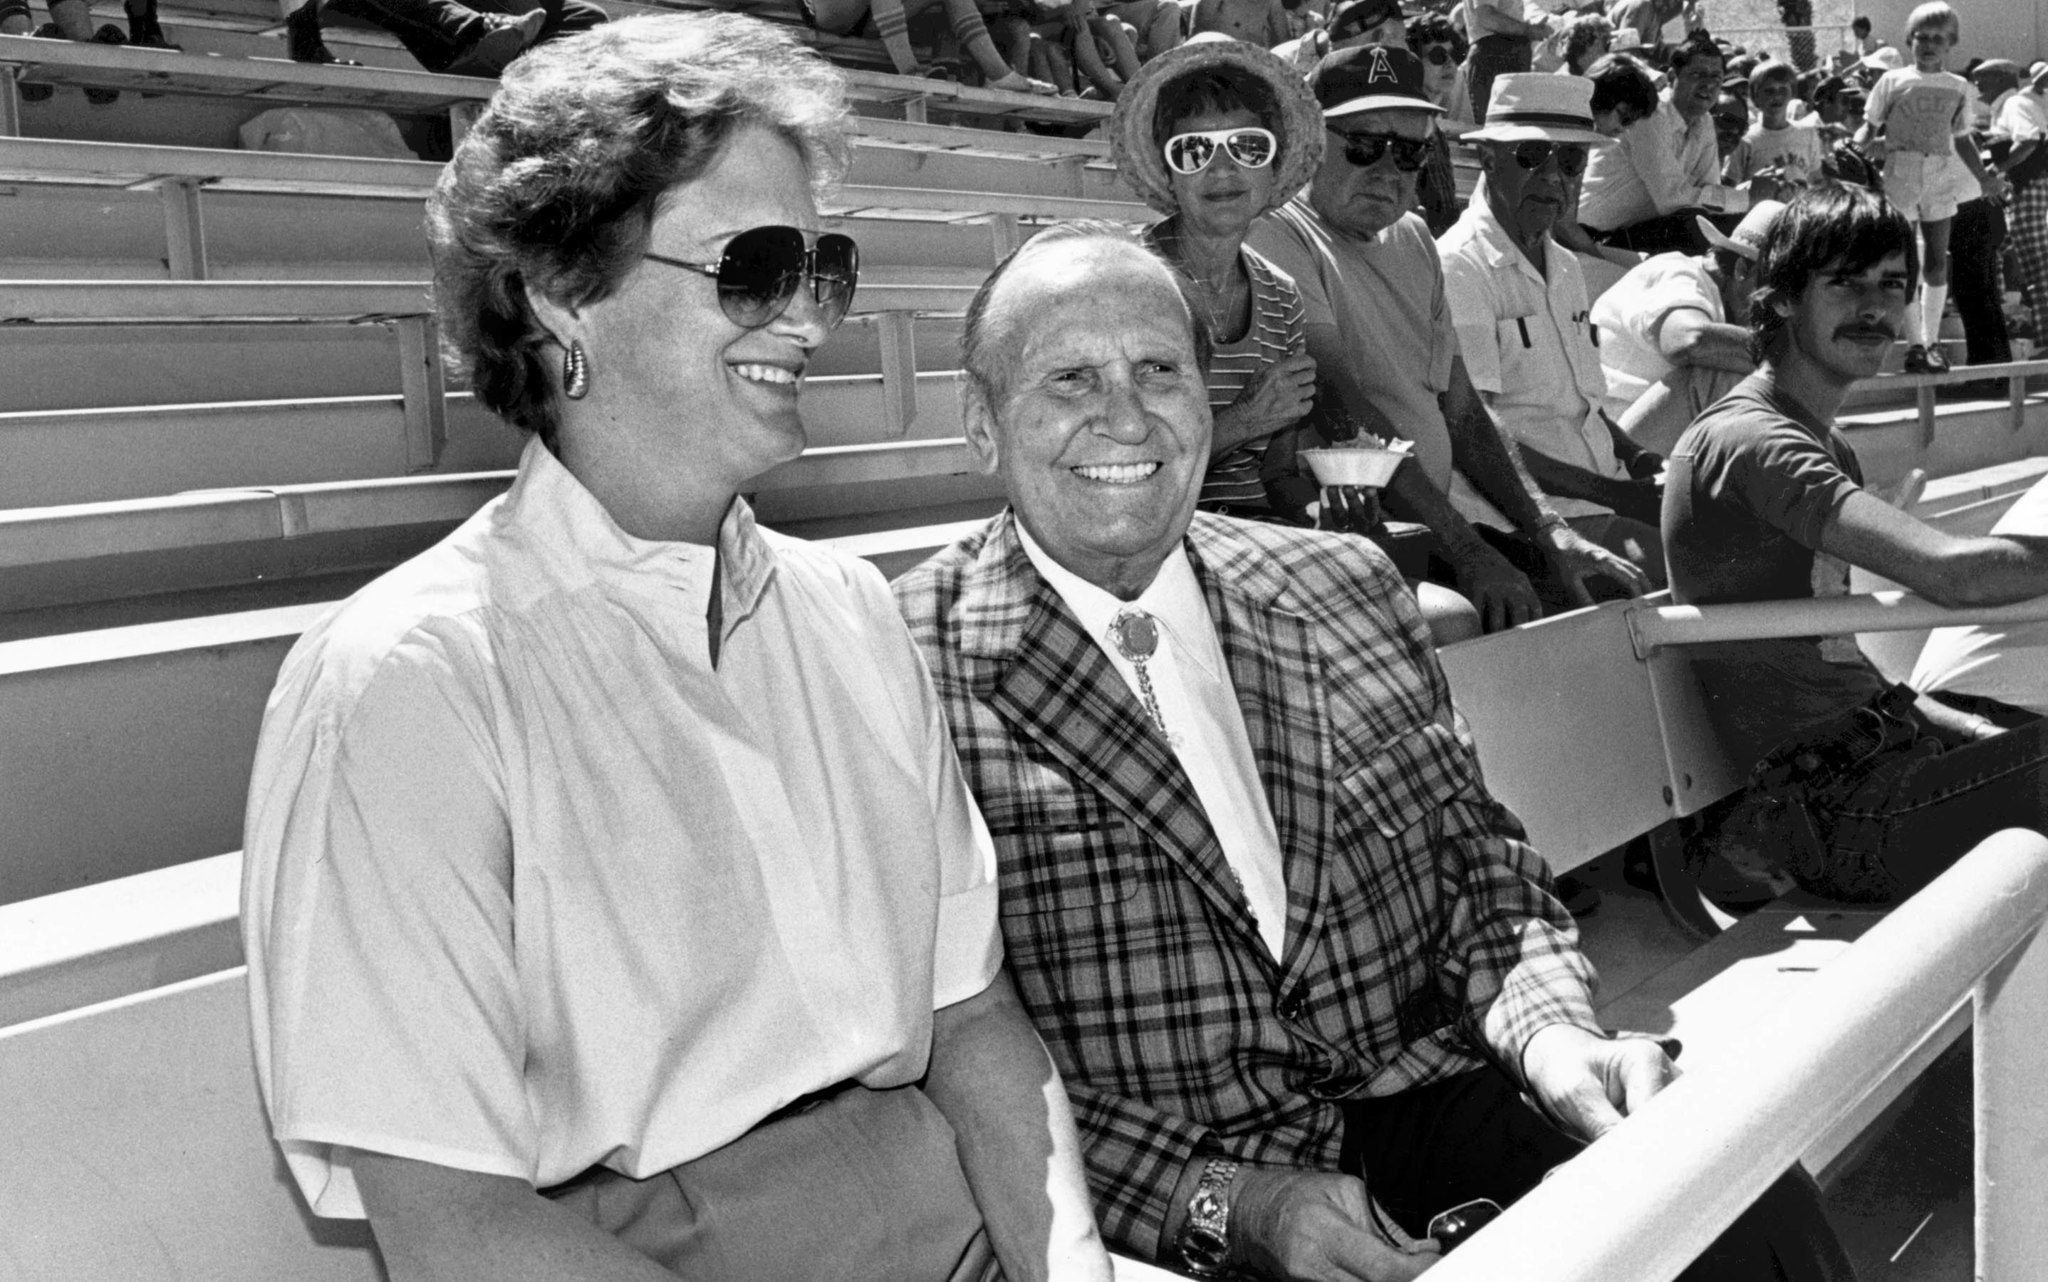 March 1984: Gene Autry takes his place in the owner's box alongside his wife, Jackie, executive vice